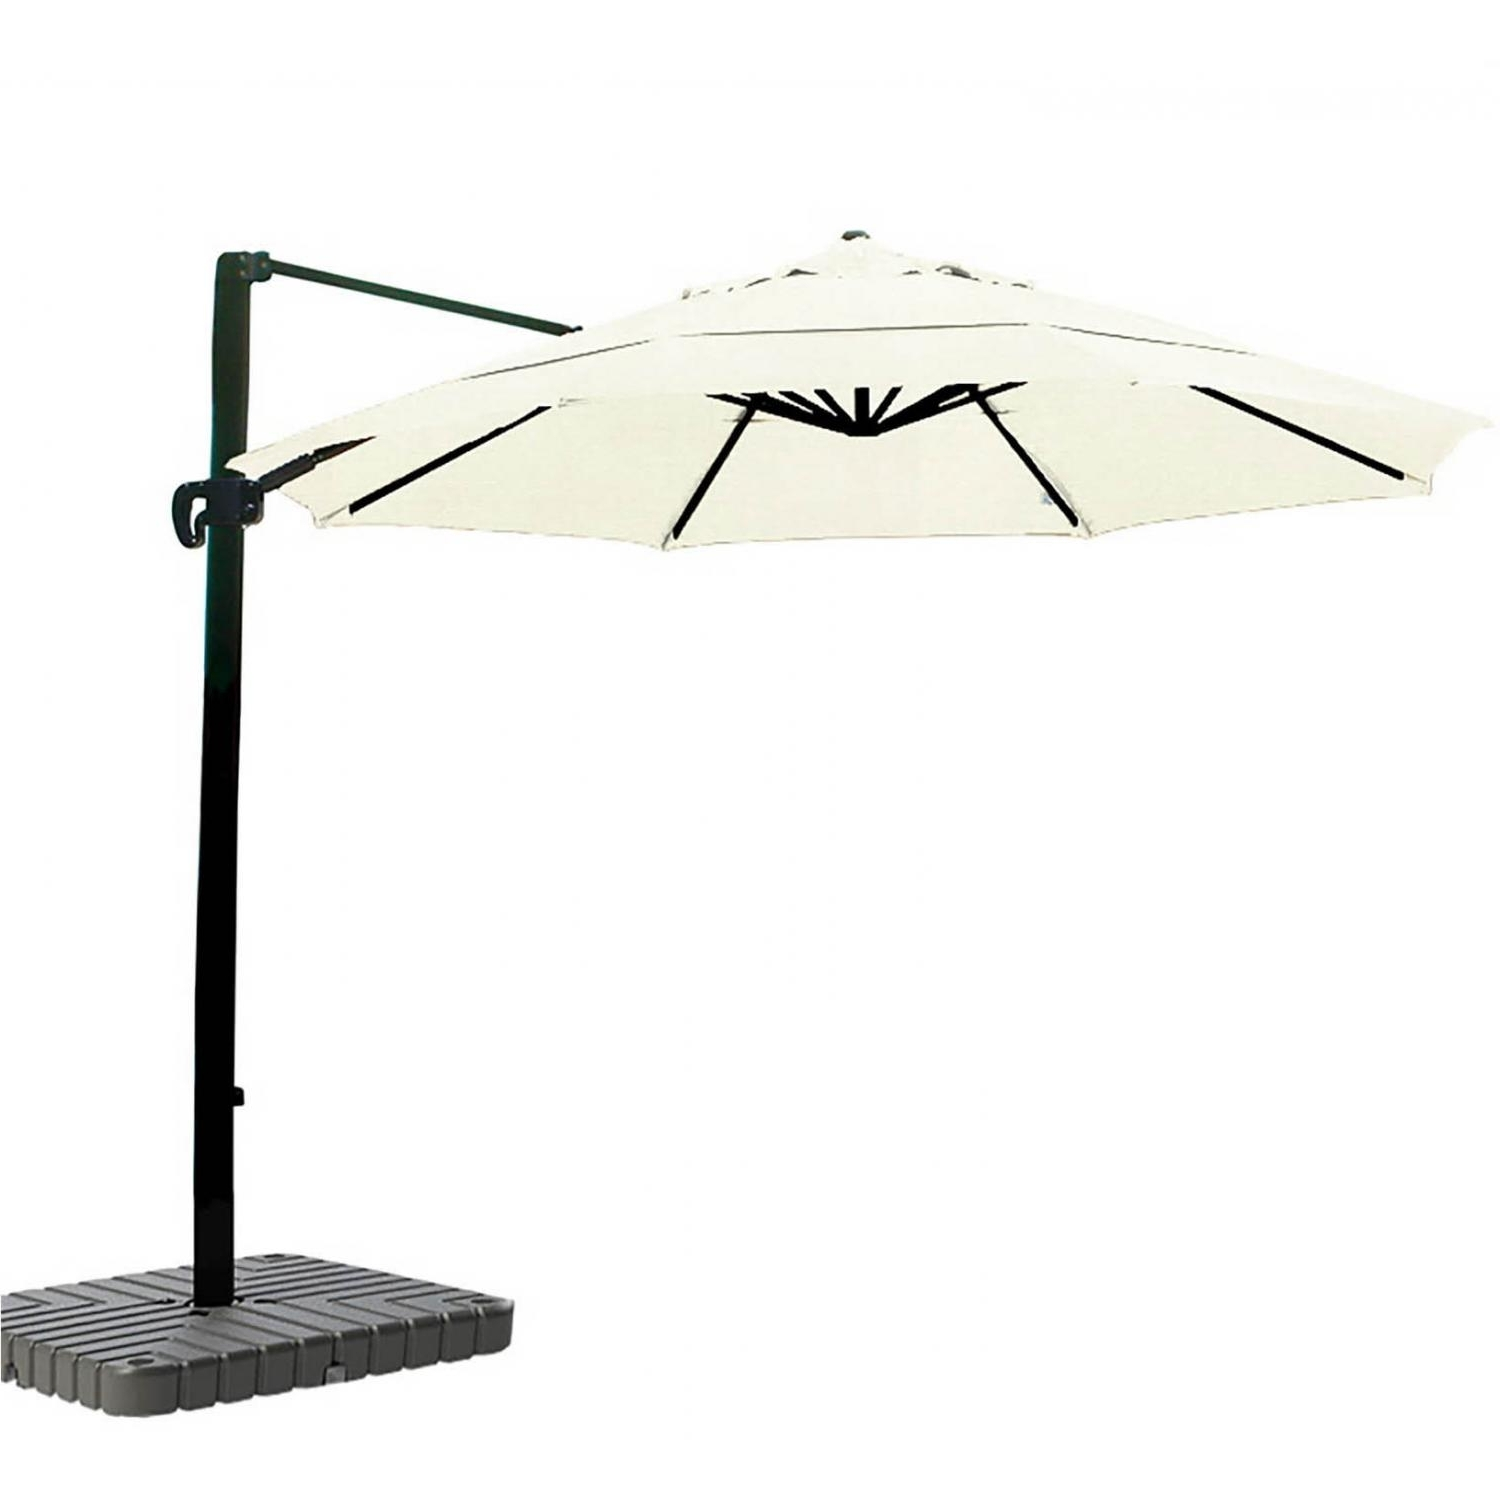 Popular California Umbrella 11 Ft Octagonal Aluminum Multi Position Tilt For 11 Ft Patio Umbrellas (Gallery 14 of 20)